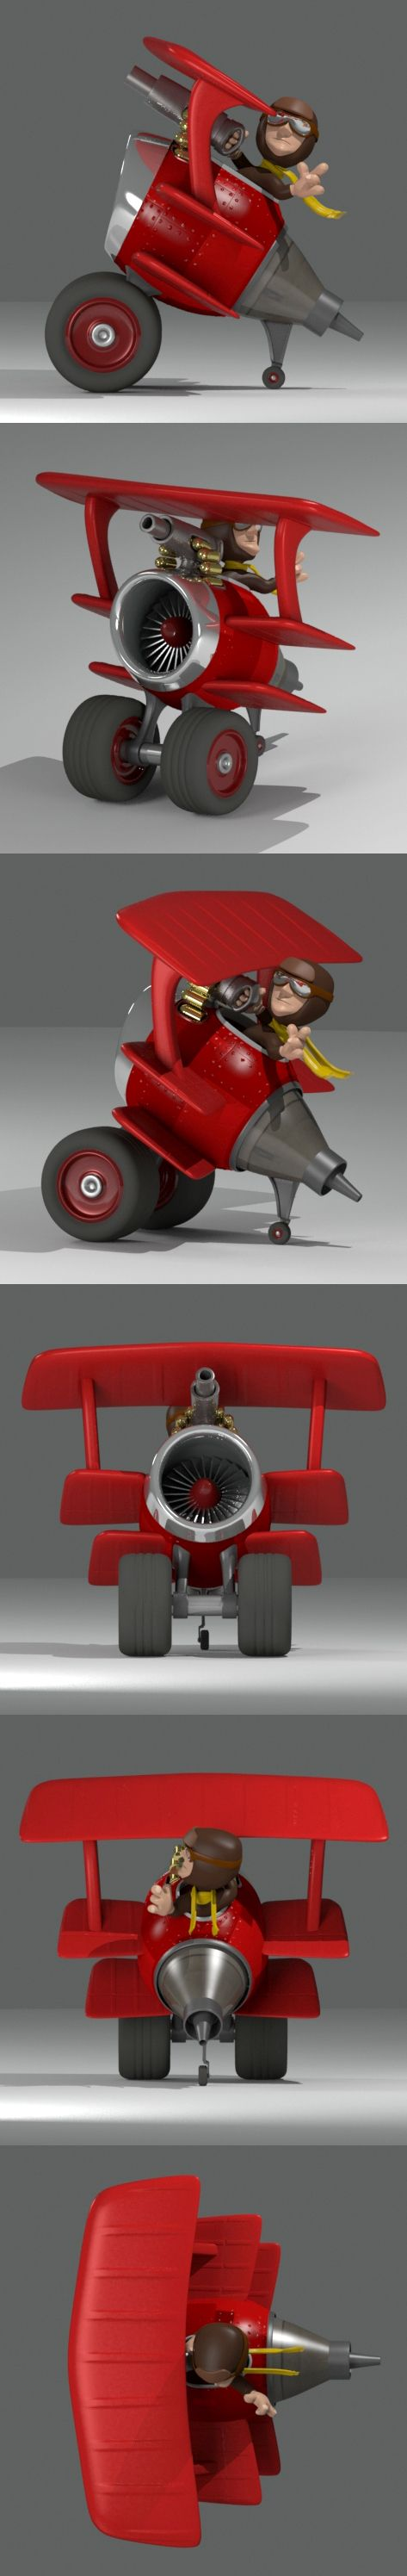 Triplane by Trace Conkle, via Behance